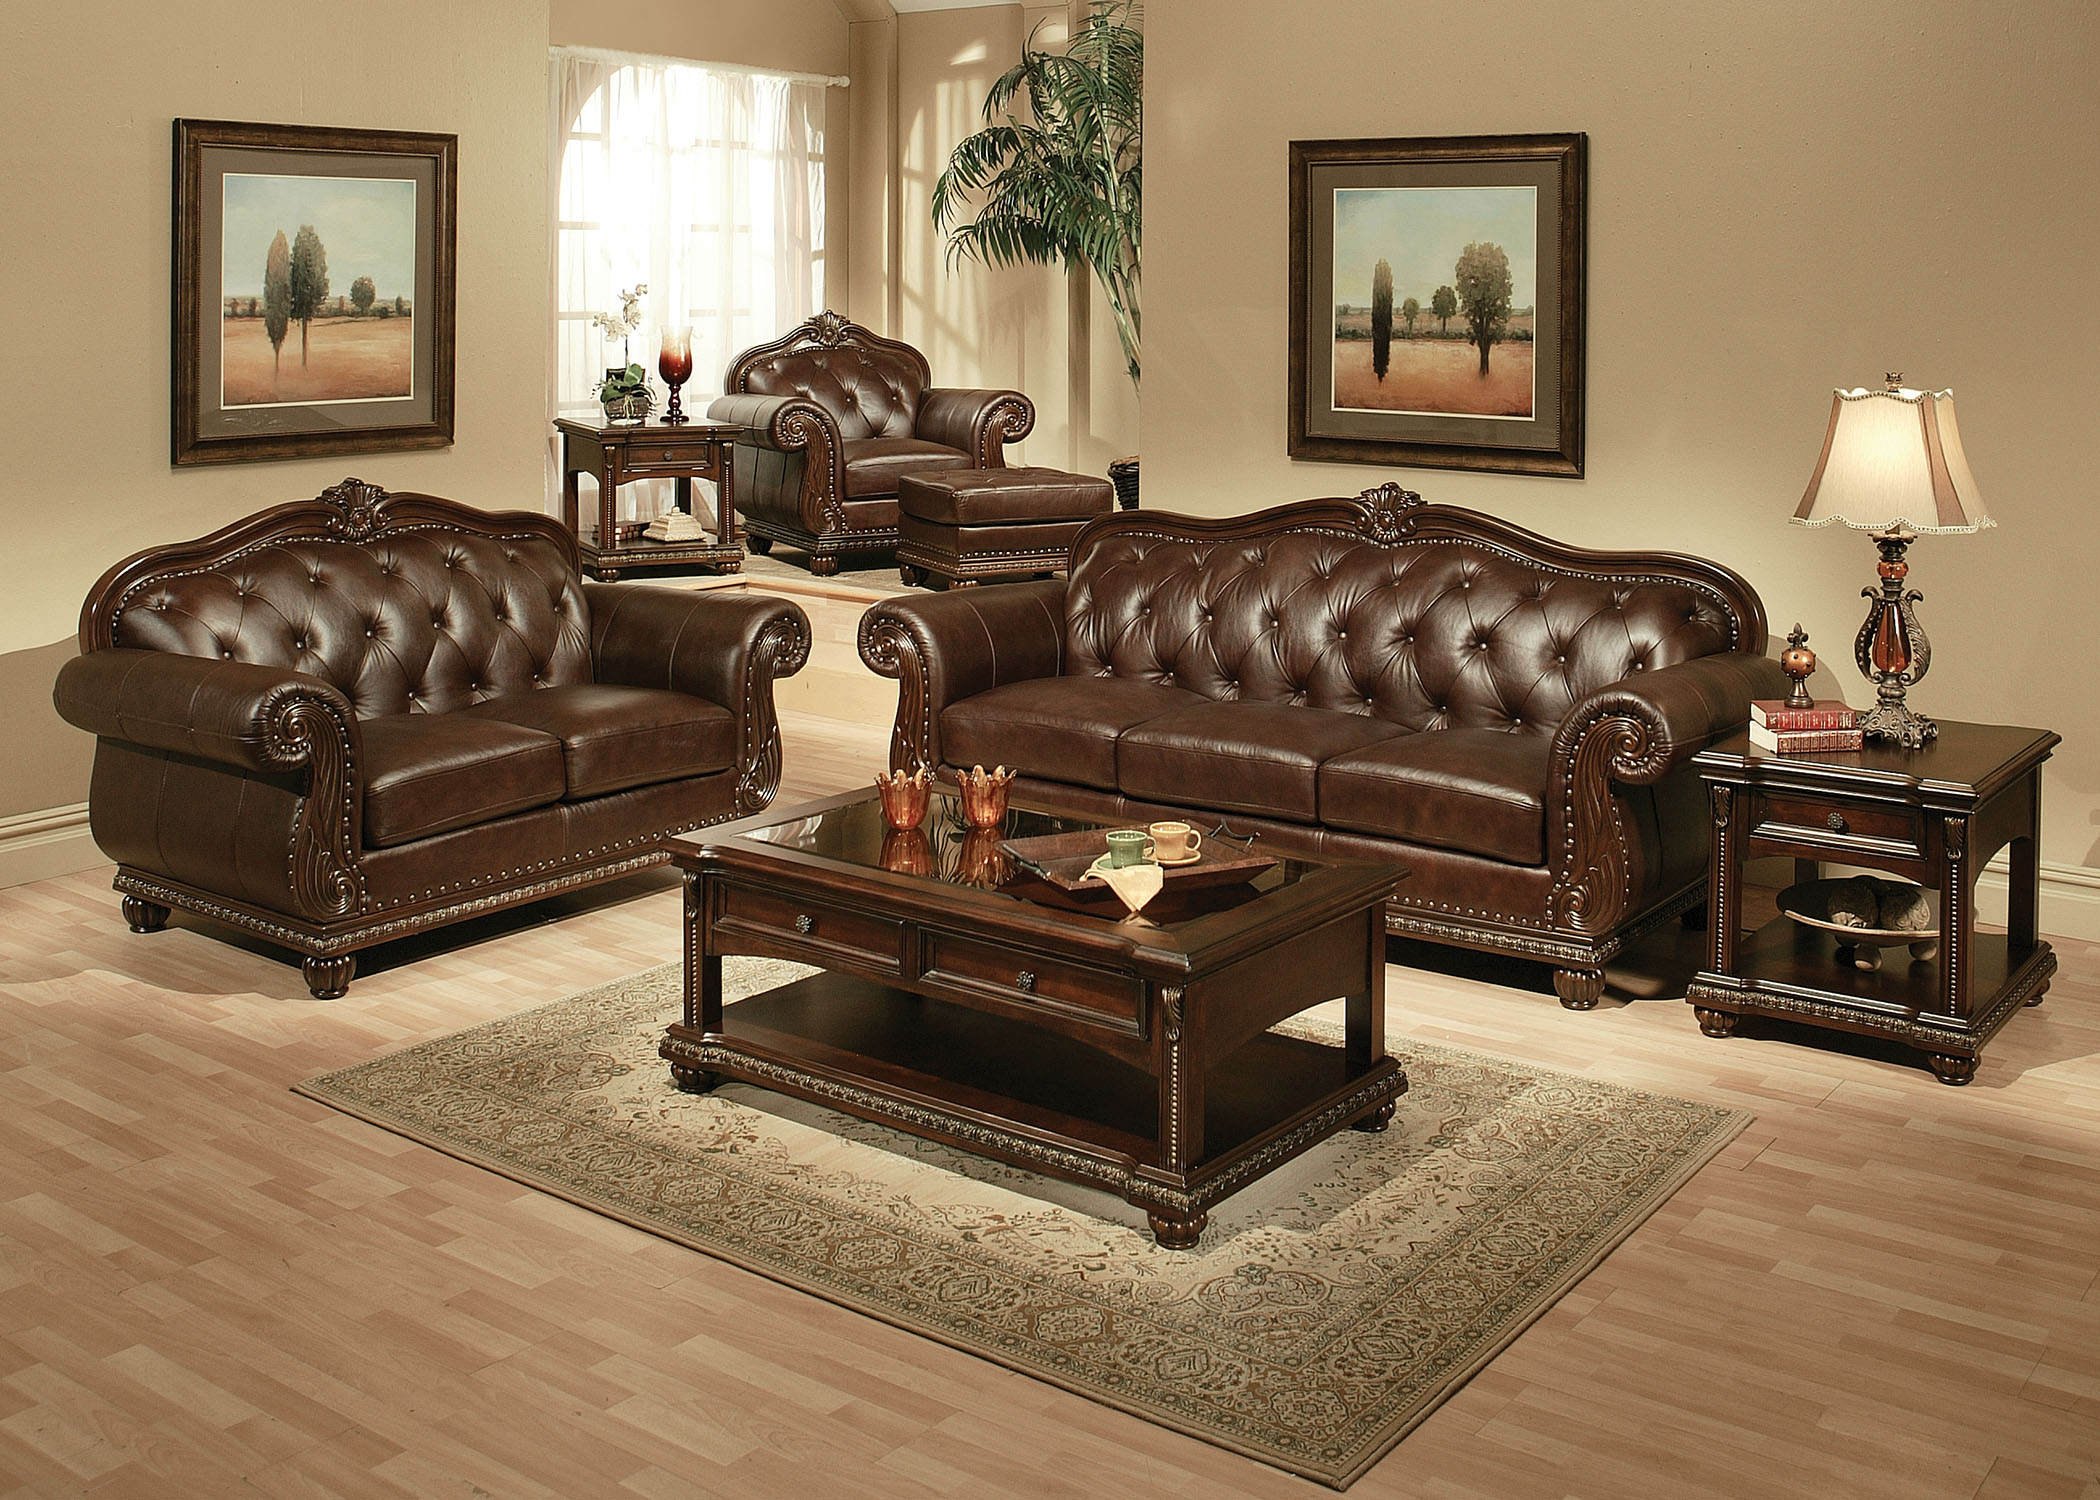 Top Grain Leather Living Room Silver State Furniture